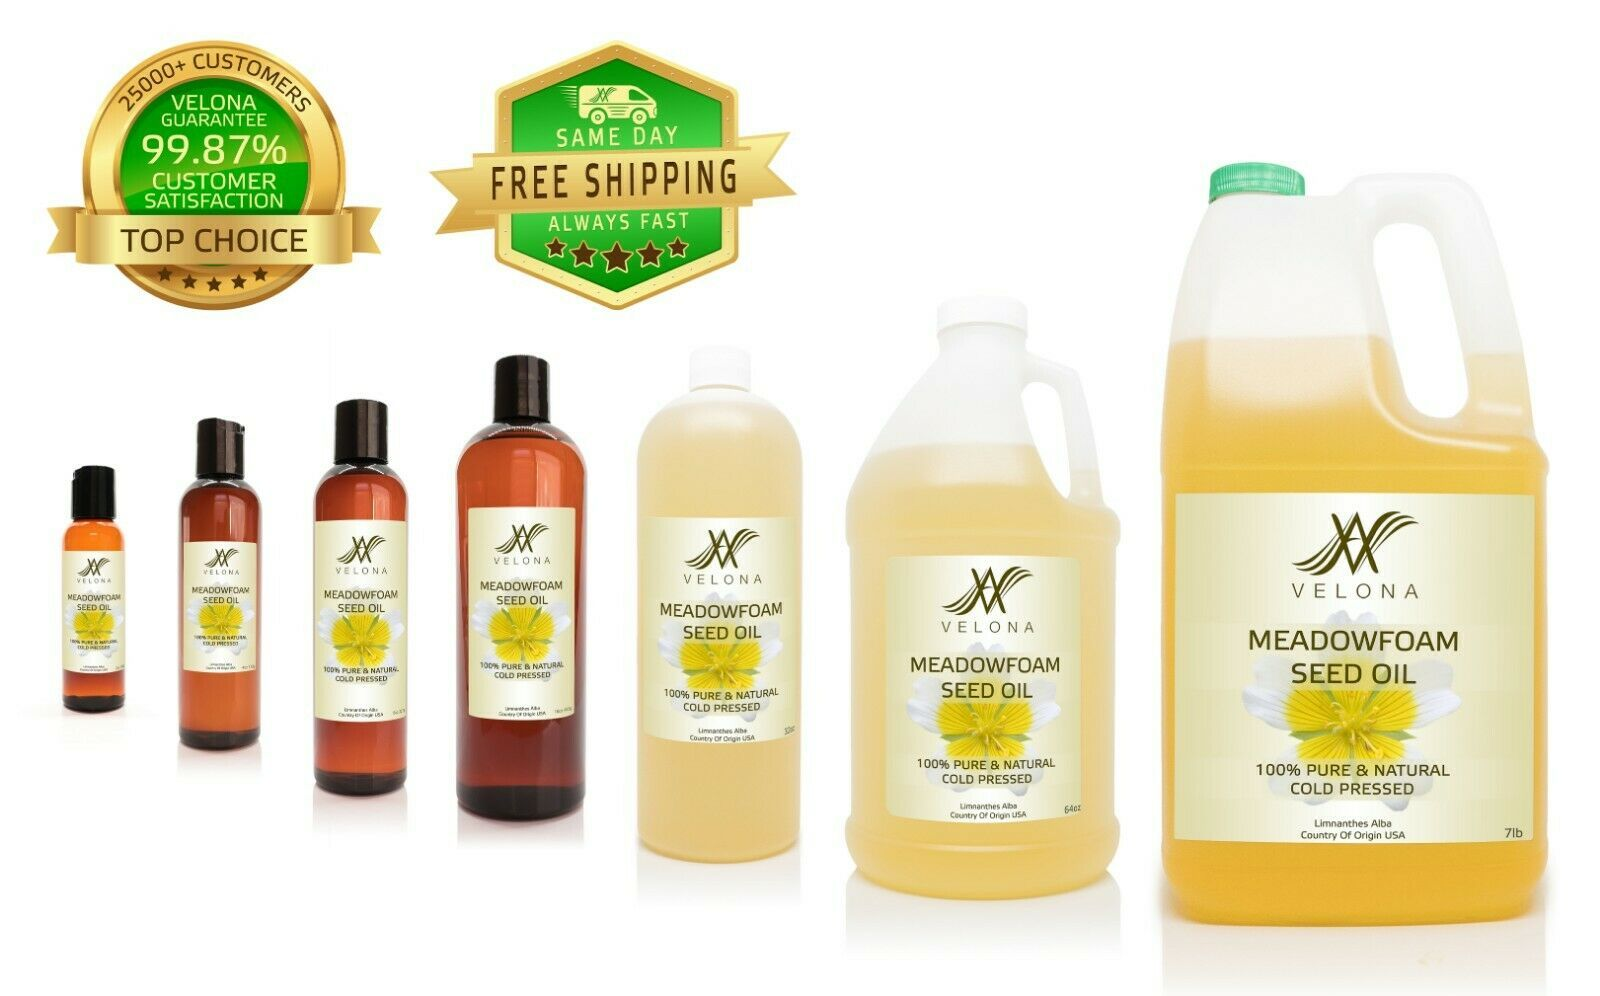 Meadowfoam Seed Oil 2oz 7lb Natural Carrier Expeller Pressed Velona Get One Natural Oils Seed Oil Organic Oil